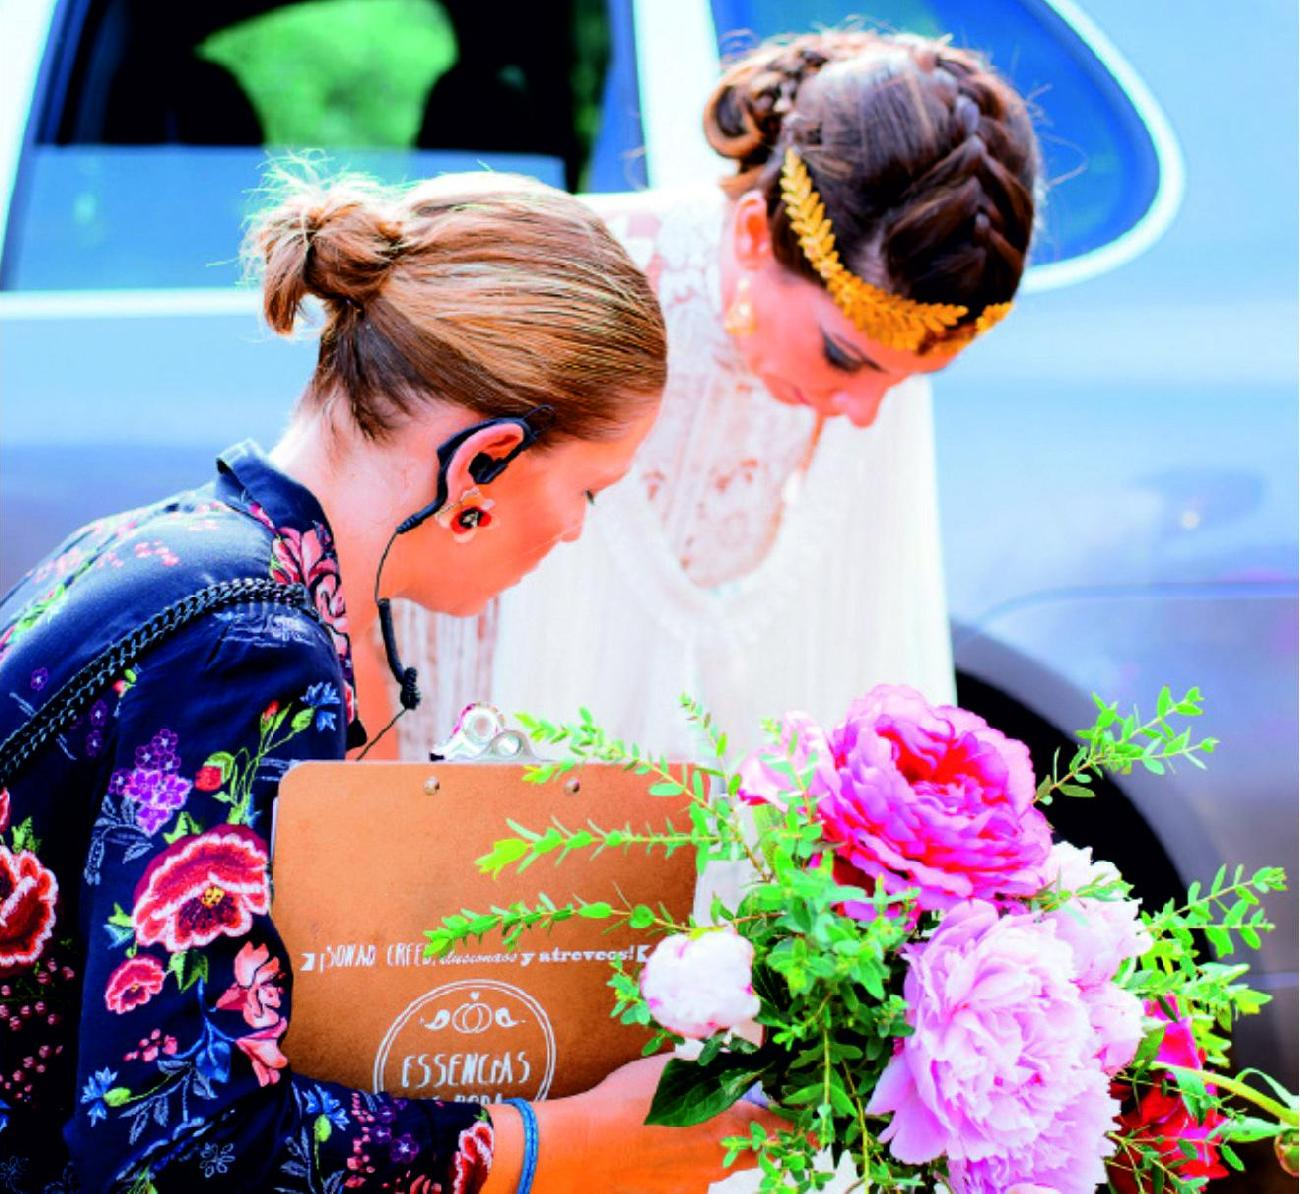 Essencias de bodas, Wedding planner Badajoz